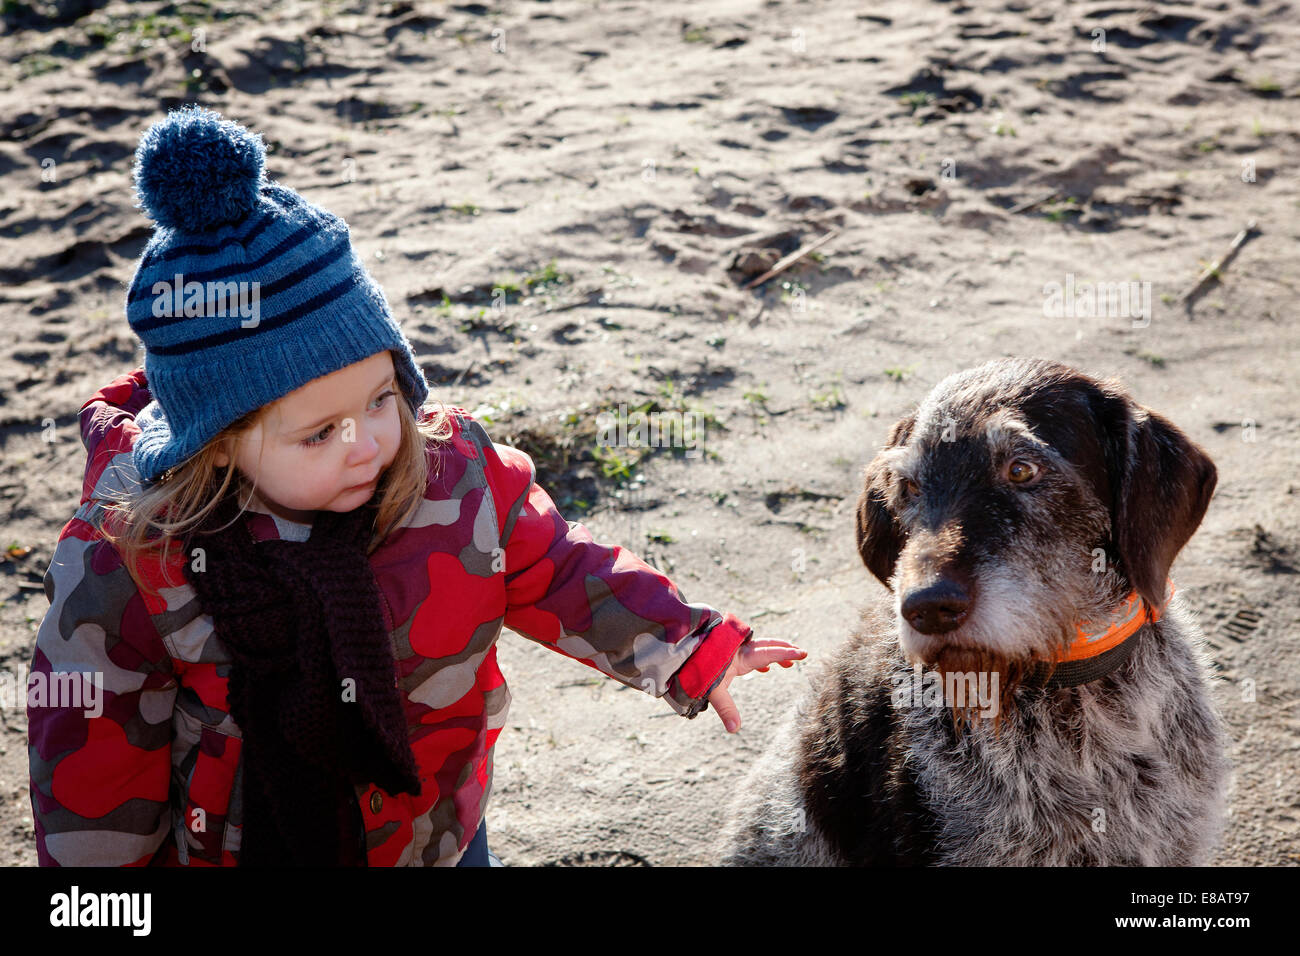 Young girl stroking dog - Stock Image